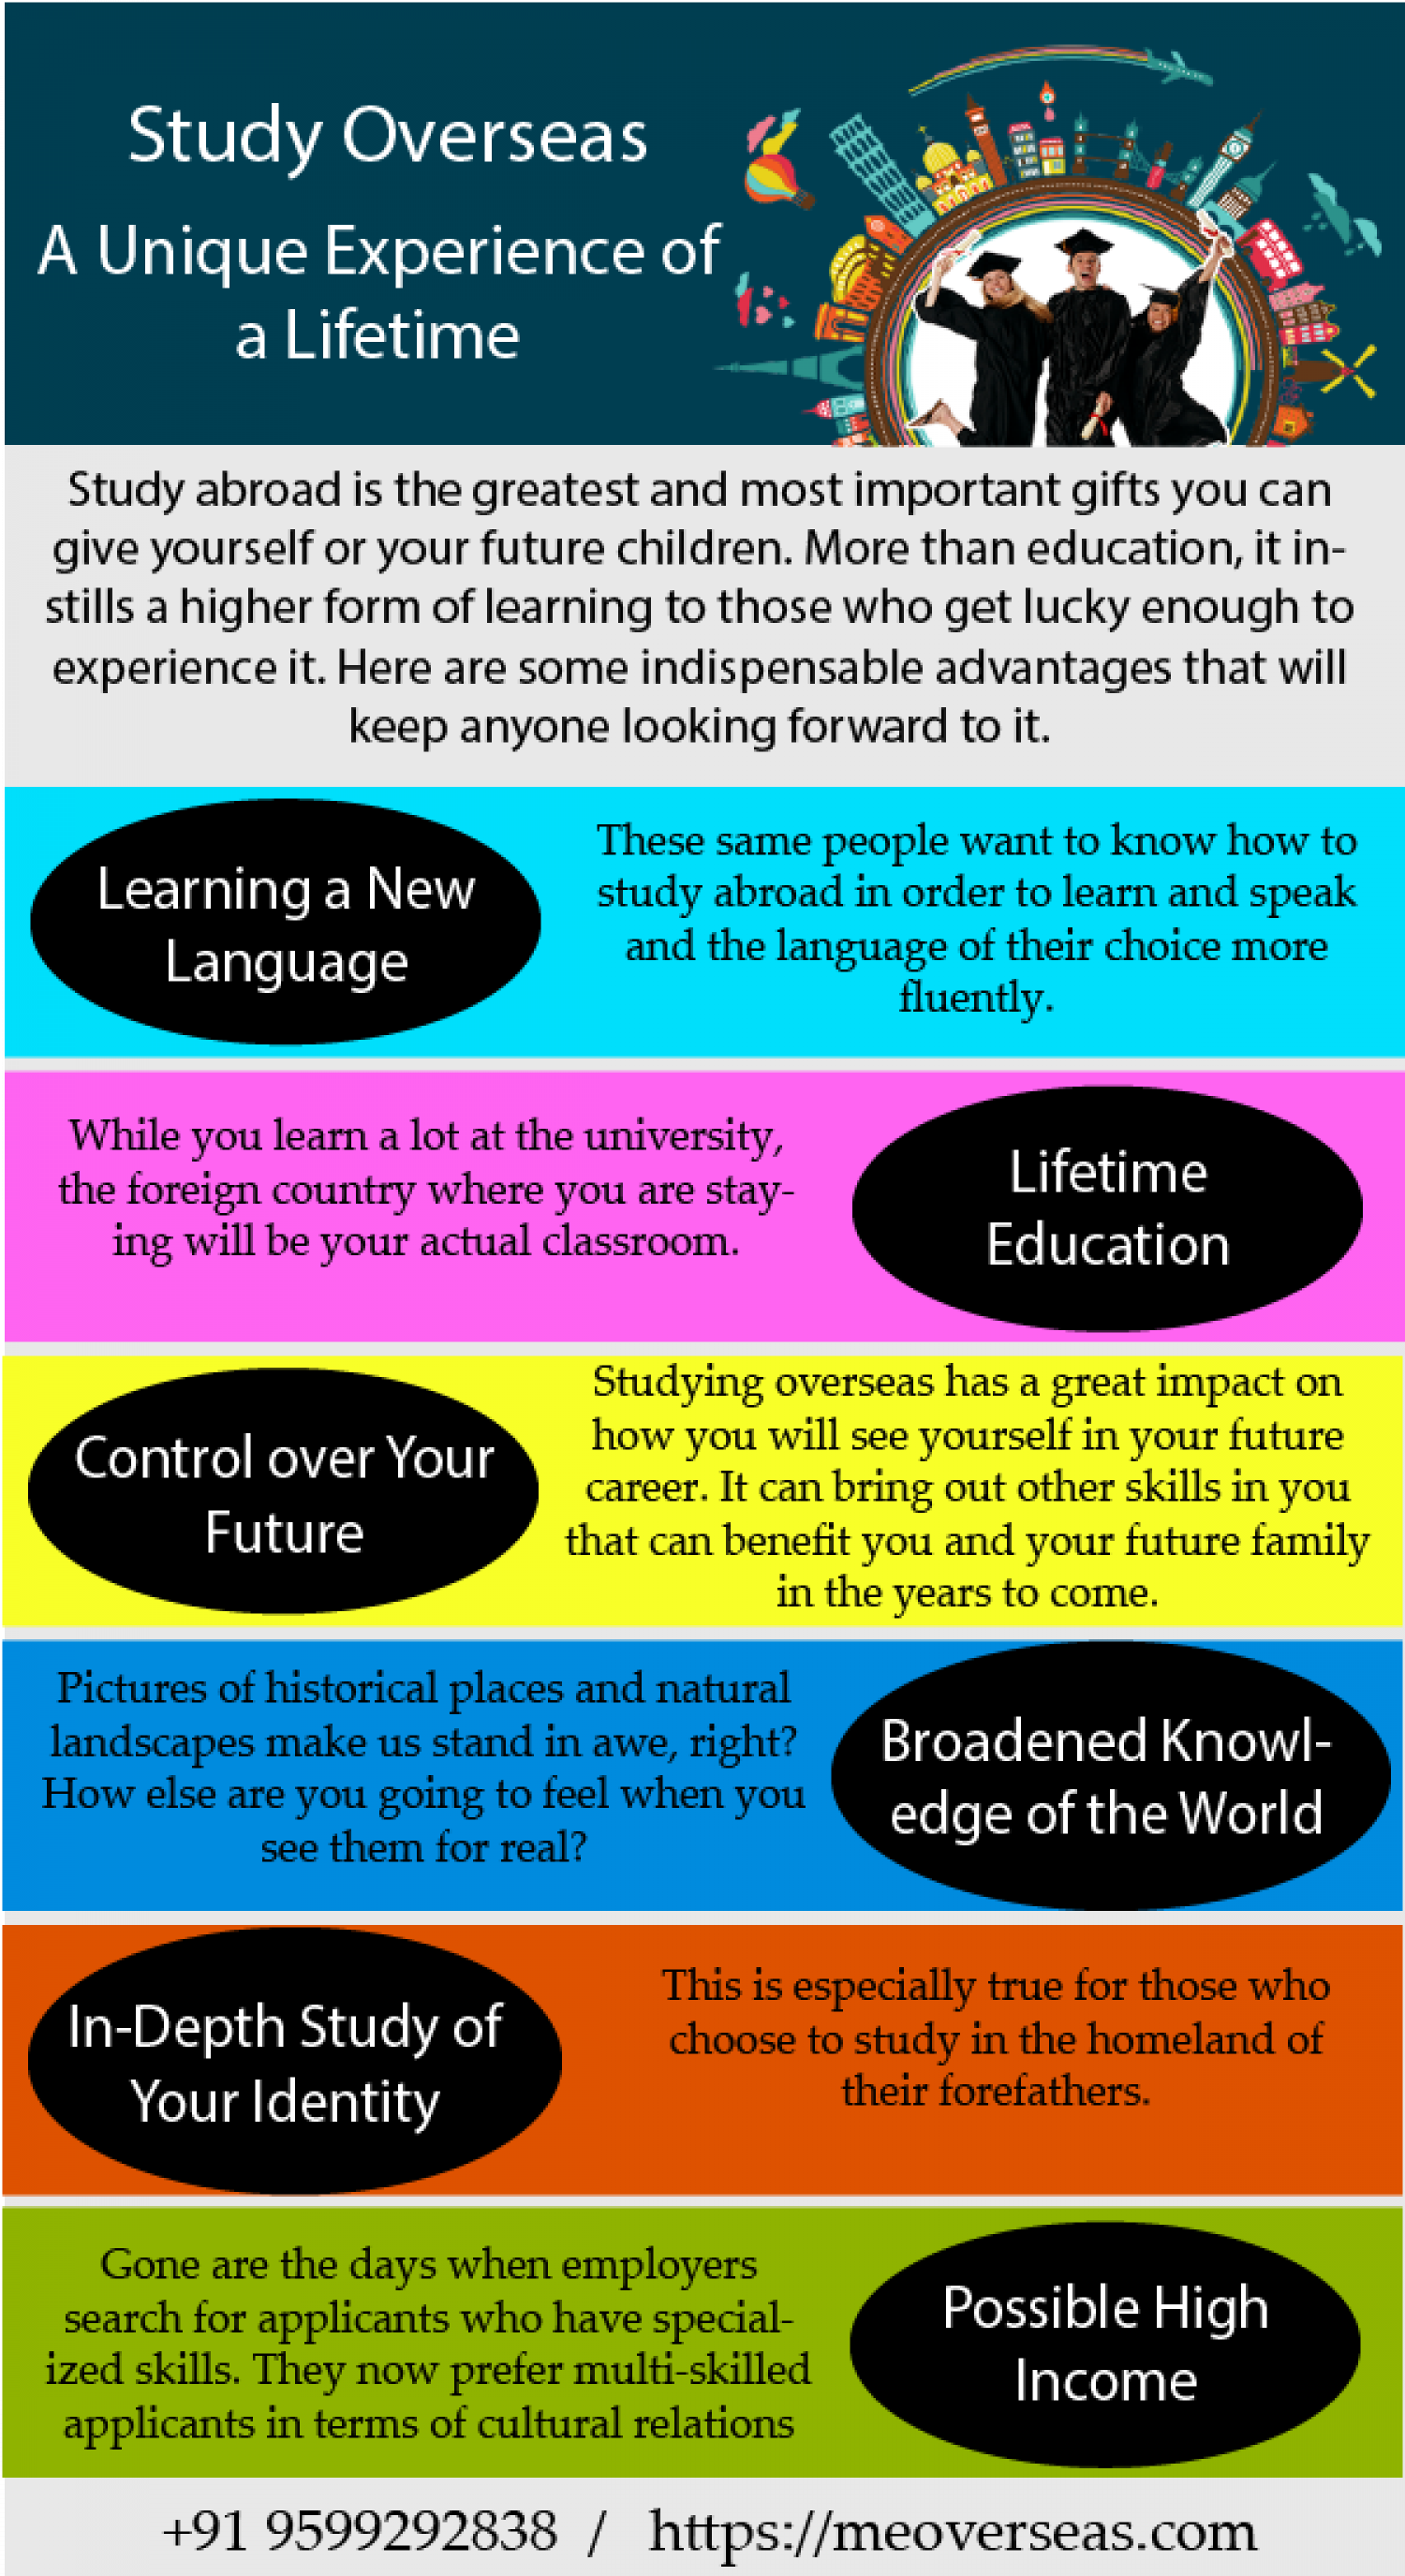 Study Overseas – A Unique Experience of a Lifetime Infographic